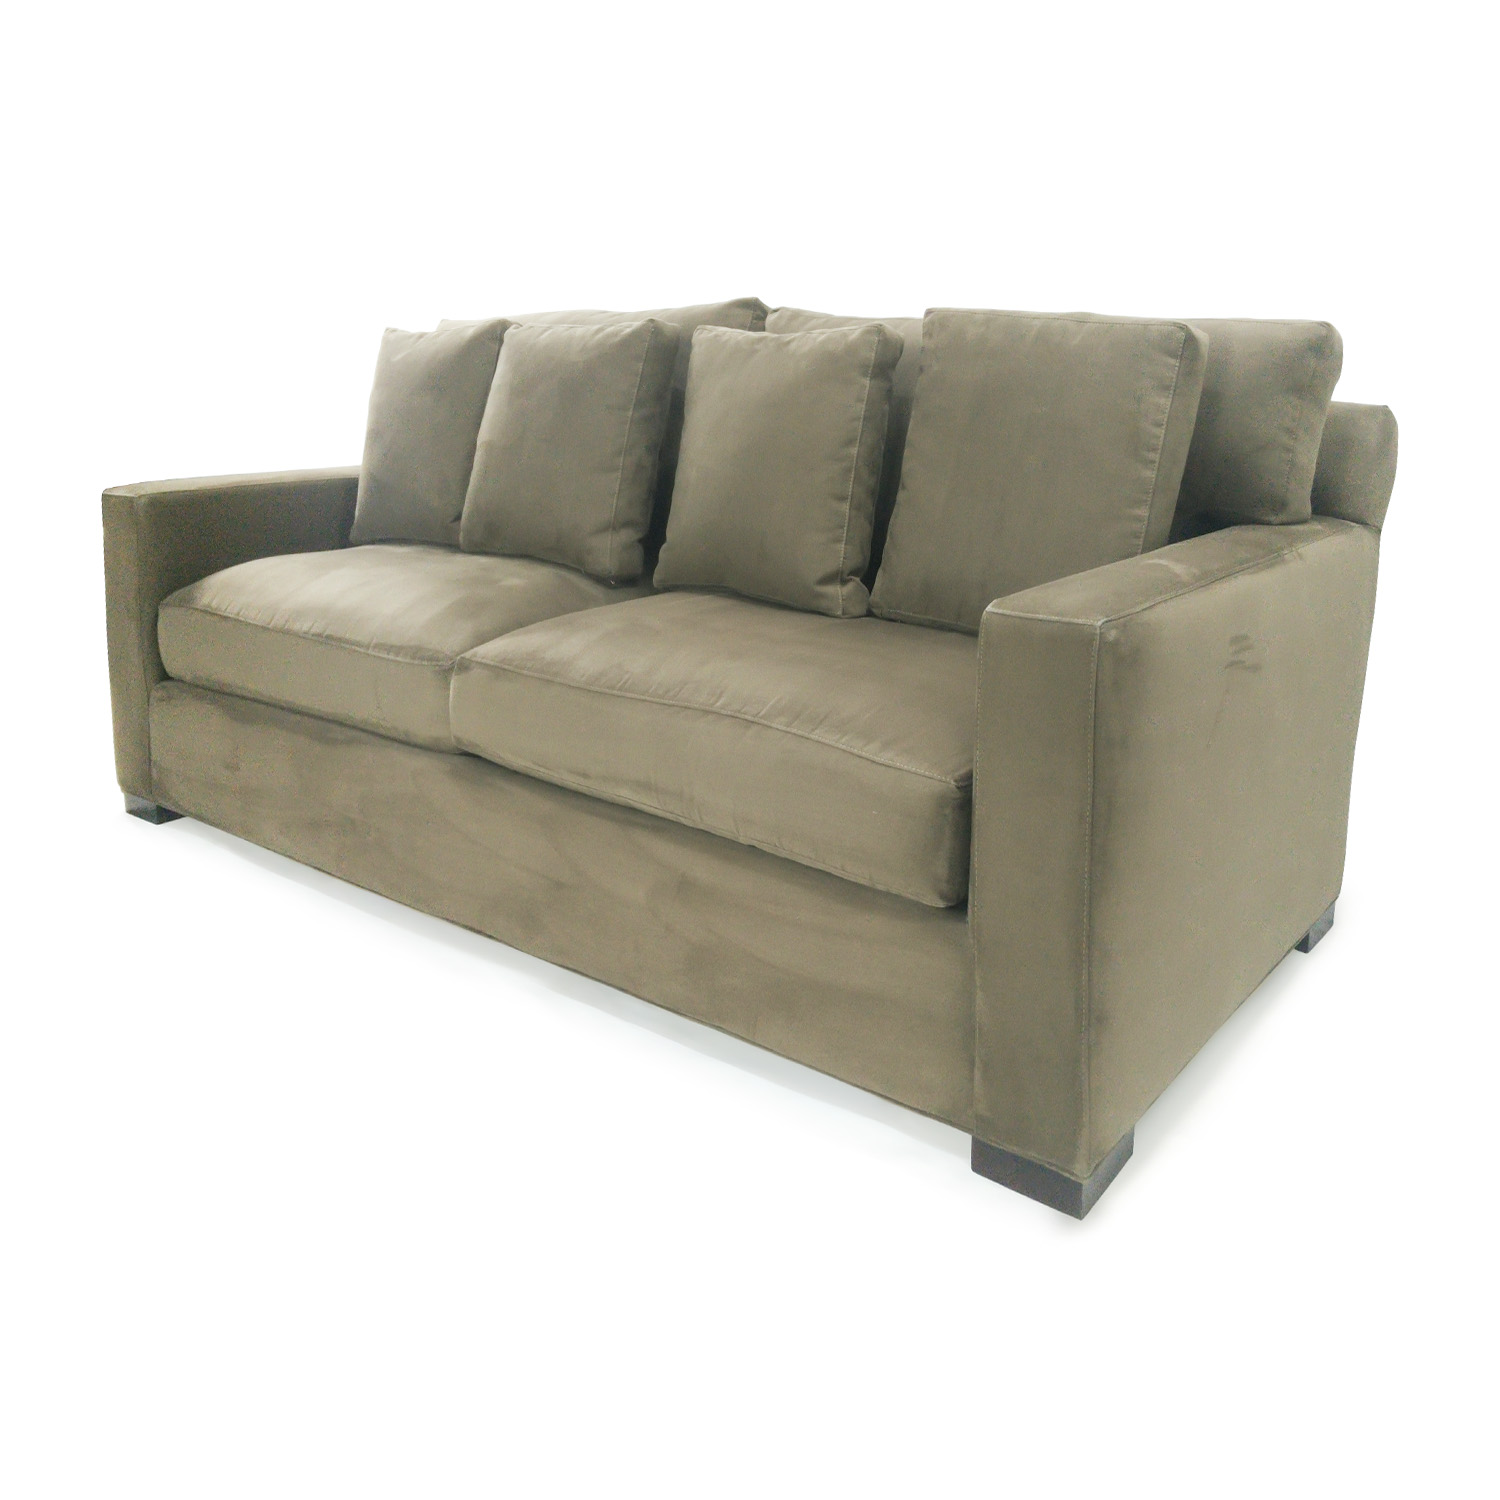 Crate and Barrell Sofas | Crate and Barrel Couch | Crate and Barrel Sectional Reviews